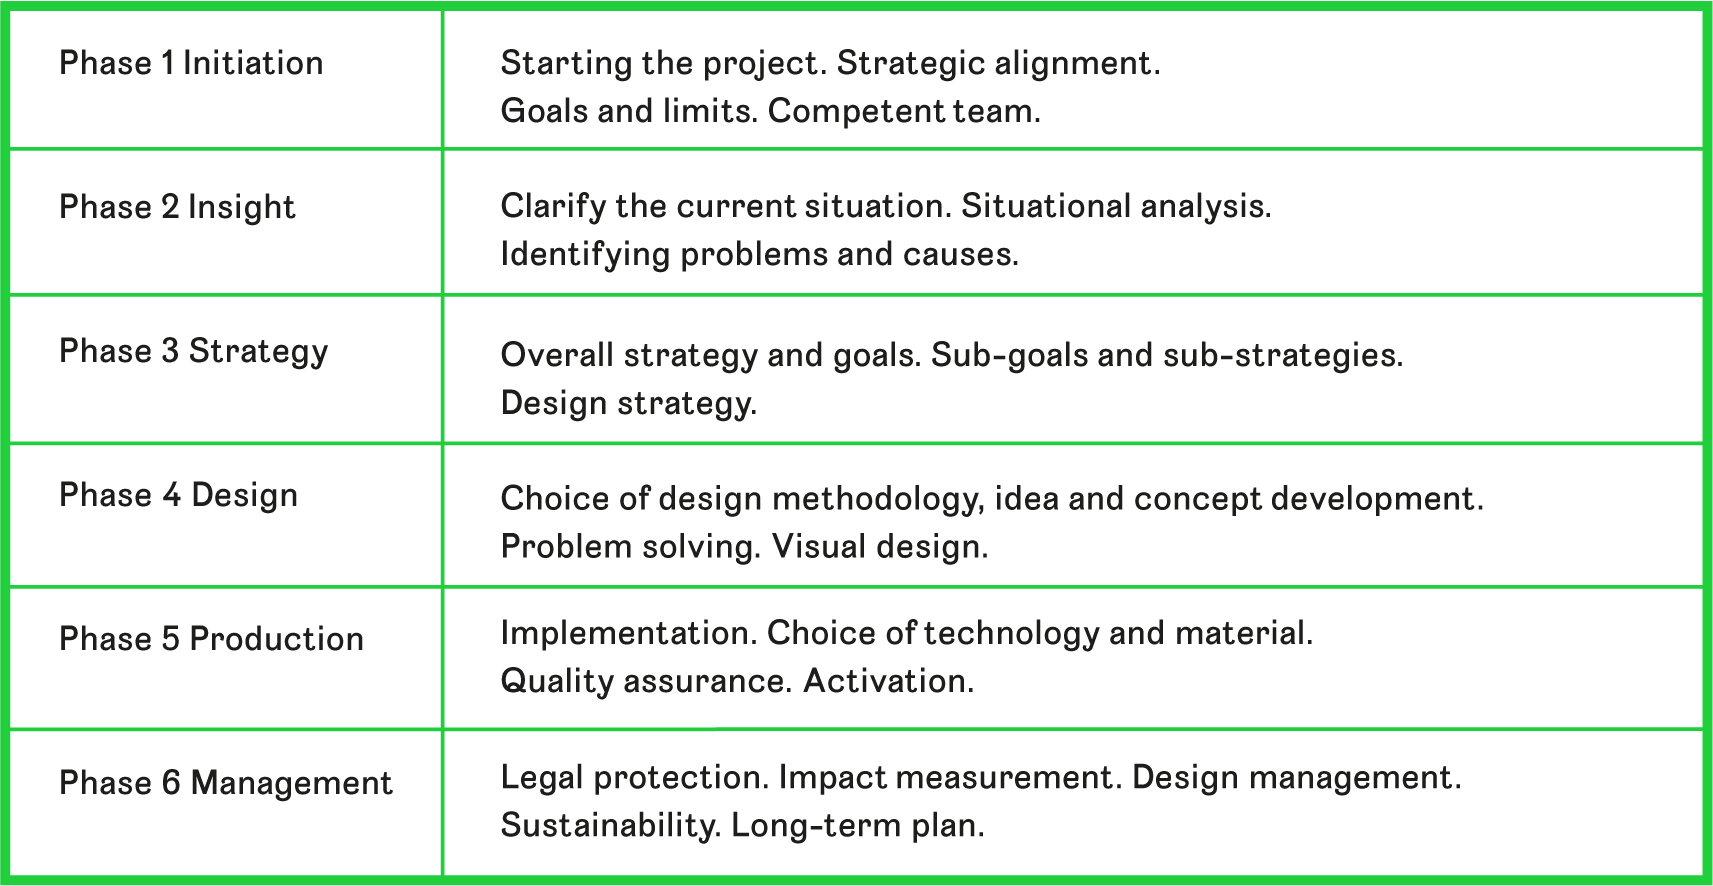 Table 2 The table shows a six-phase strategic design process with examples of key factors relevant to brand development. It is necessary to go back and forth between the phases in order to link insight, strategy and design into a whole.